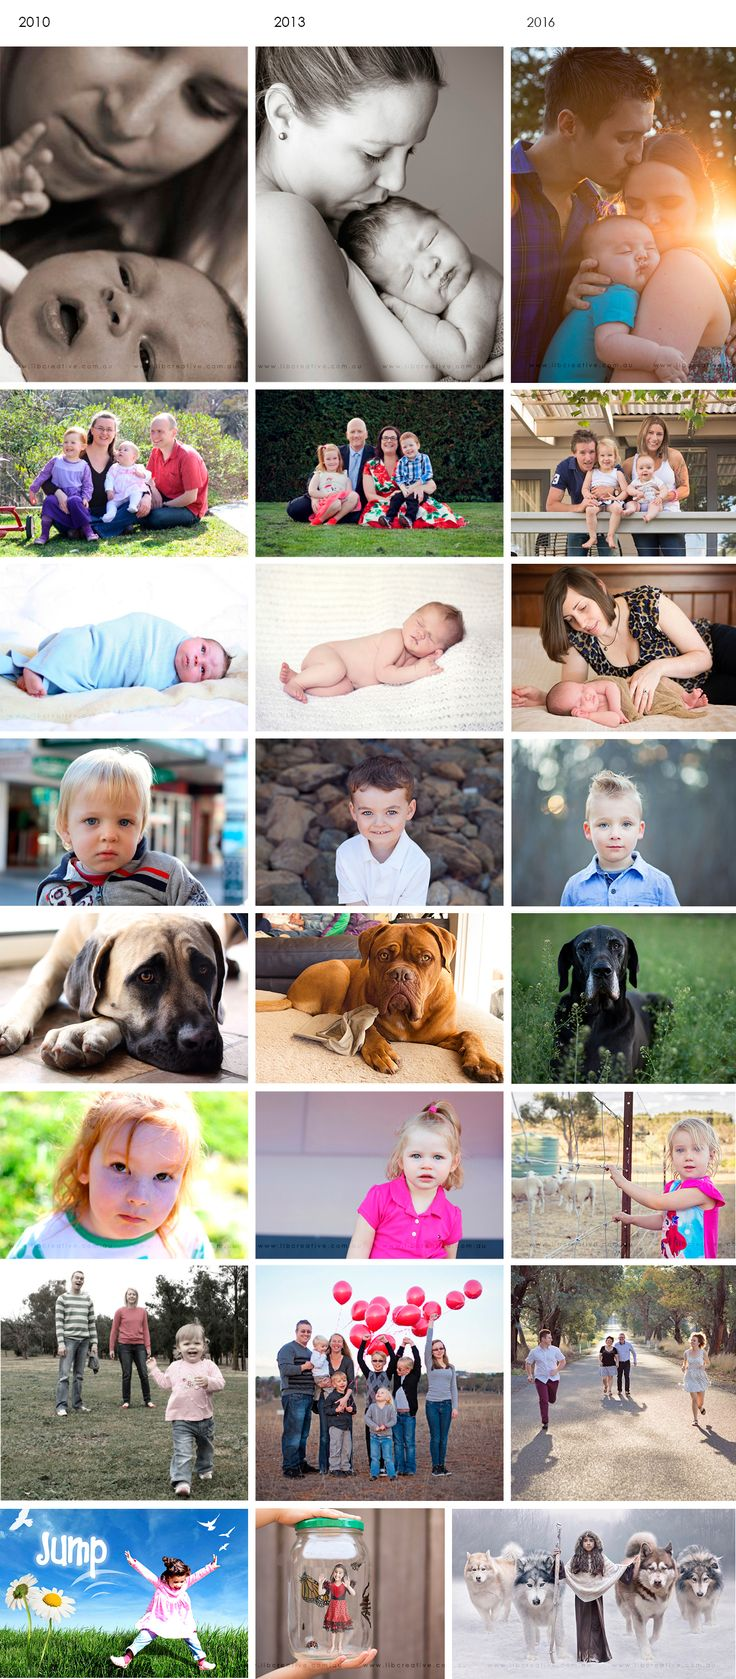 Photography development over 6 years - Then & Now - Lib Creative - family and portrait photography canberra queanbeyan